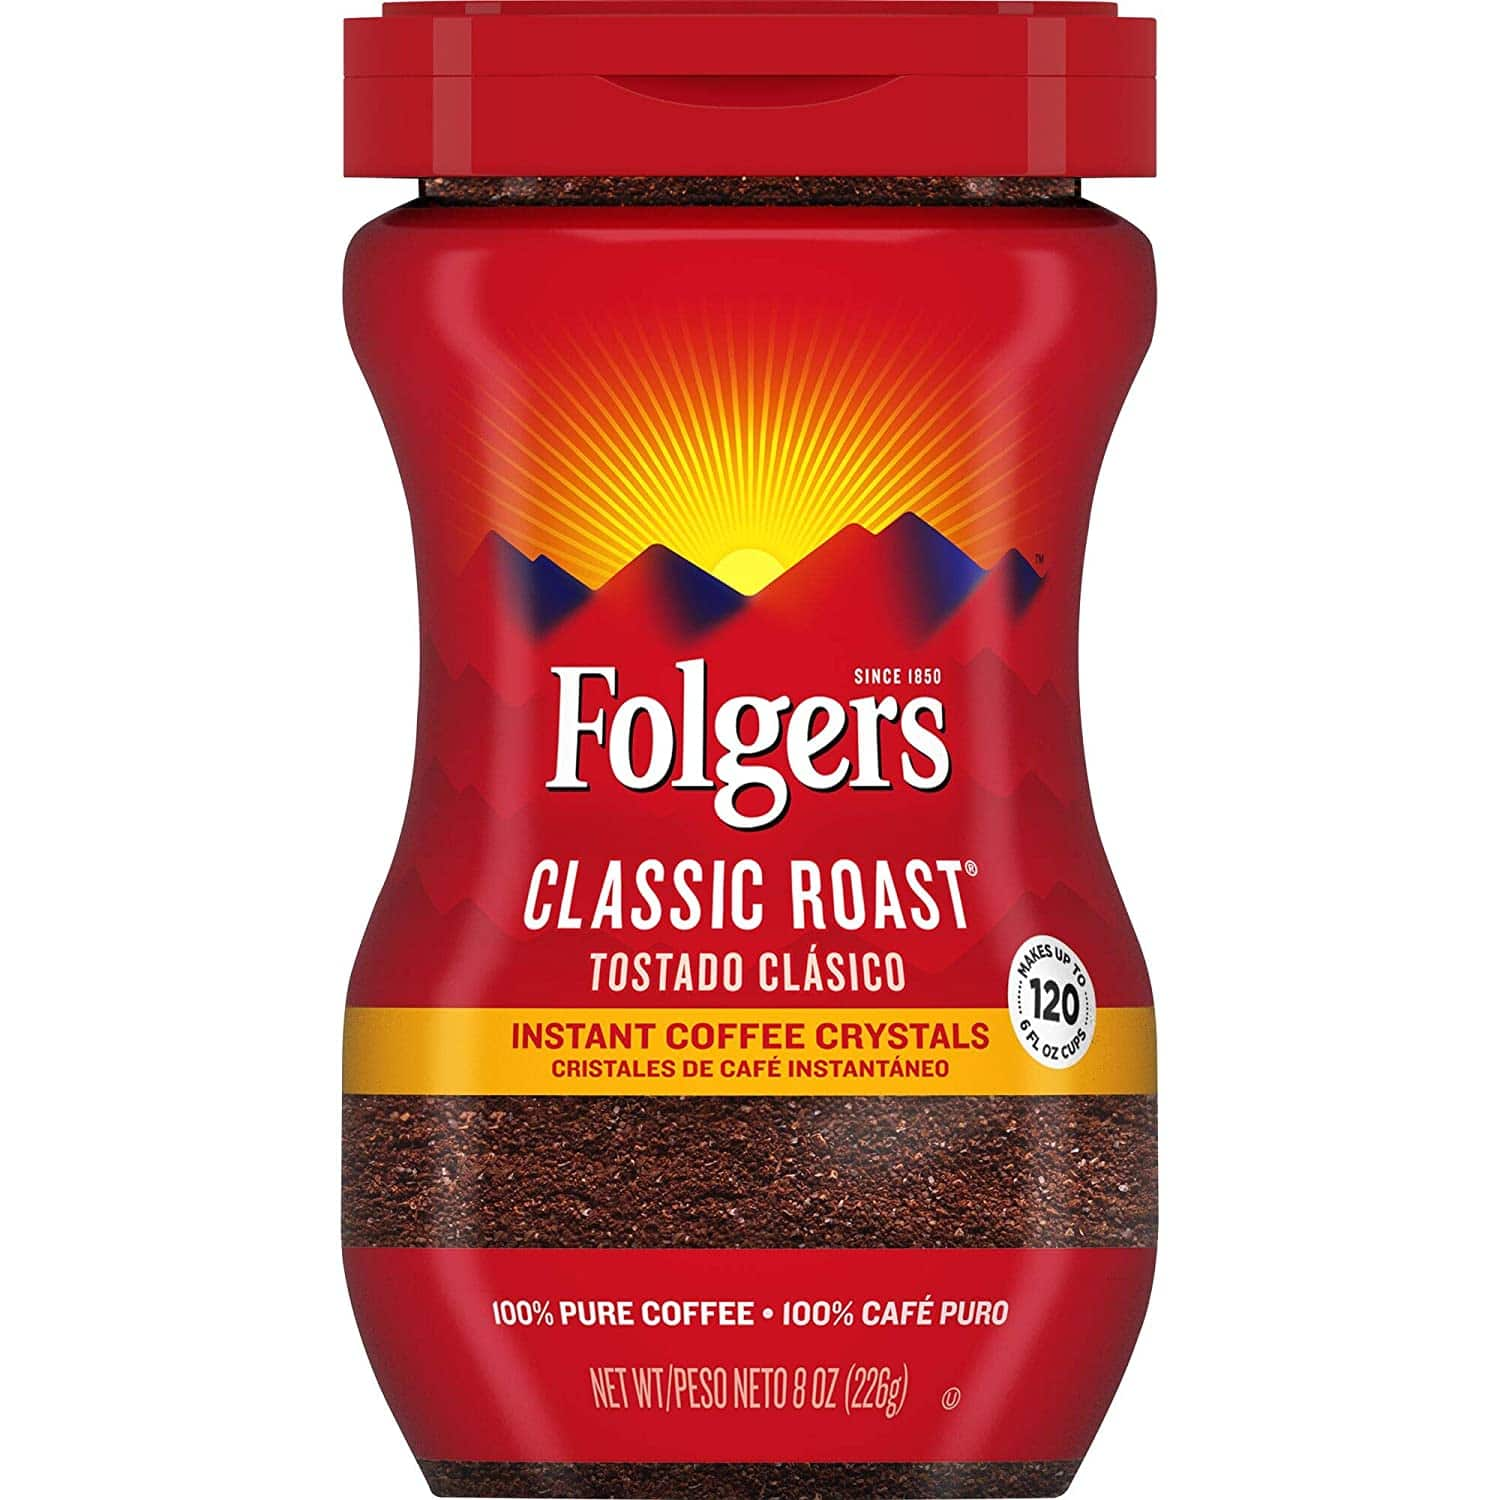 8-Oz Folgers Classic Roast Instant Coffee Crystals $3.97 w/ S&S + Free Shipping w/ Prime or on $25+